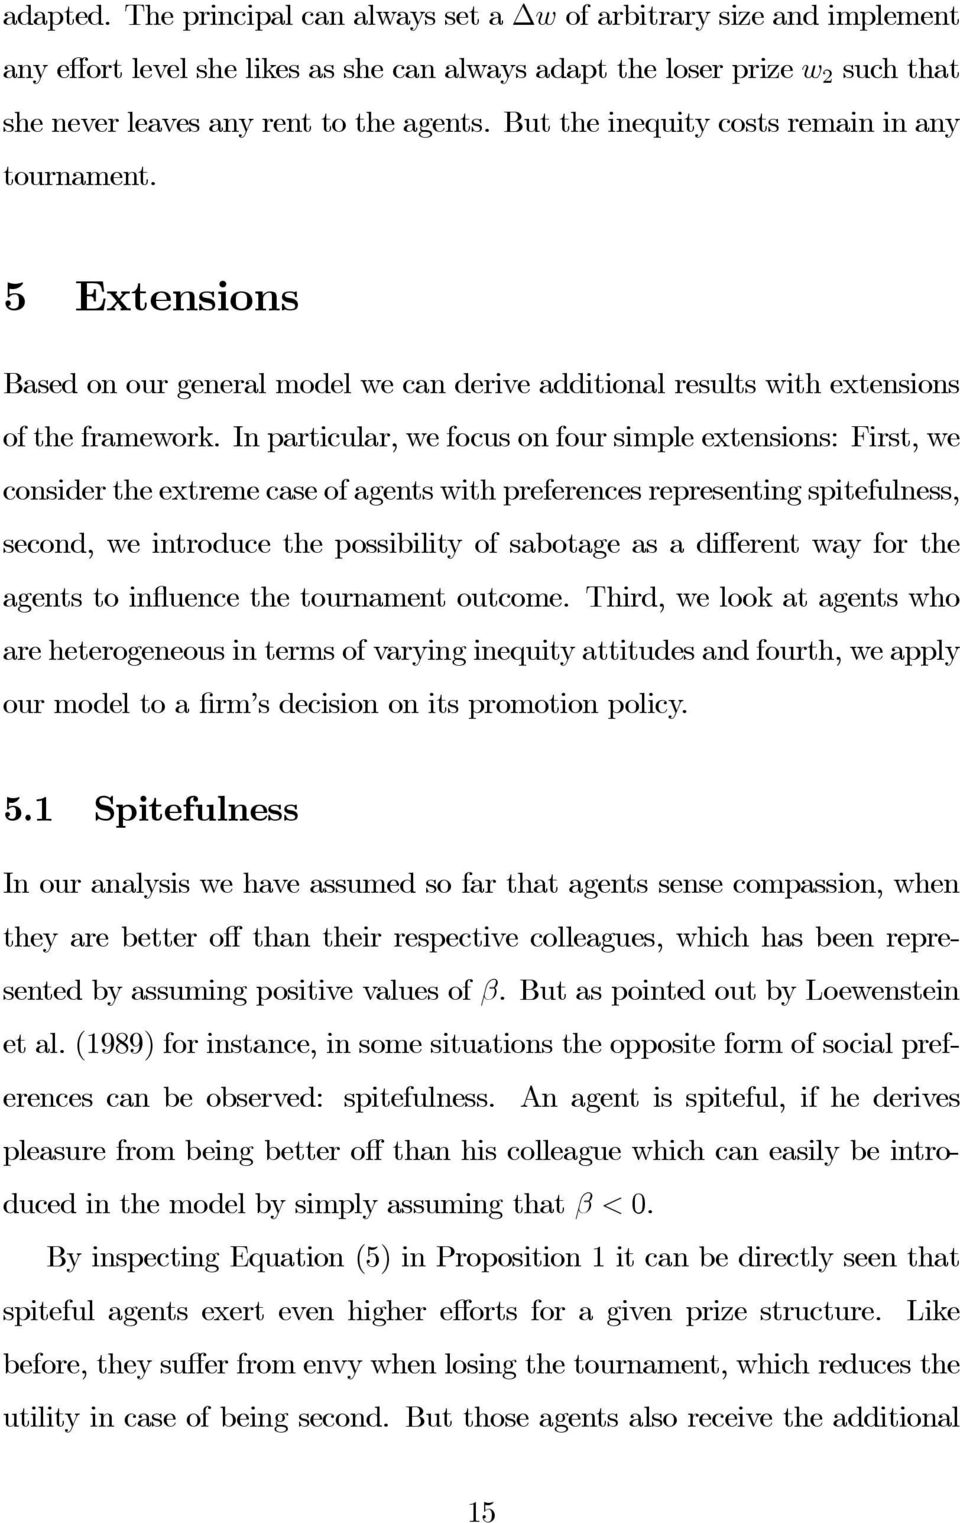 In particular, we focus on four simple extensions: First, we consider the extreme case of agents with preferences representing spitefulness, second, we introduce the possibility of sabotage as a